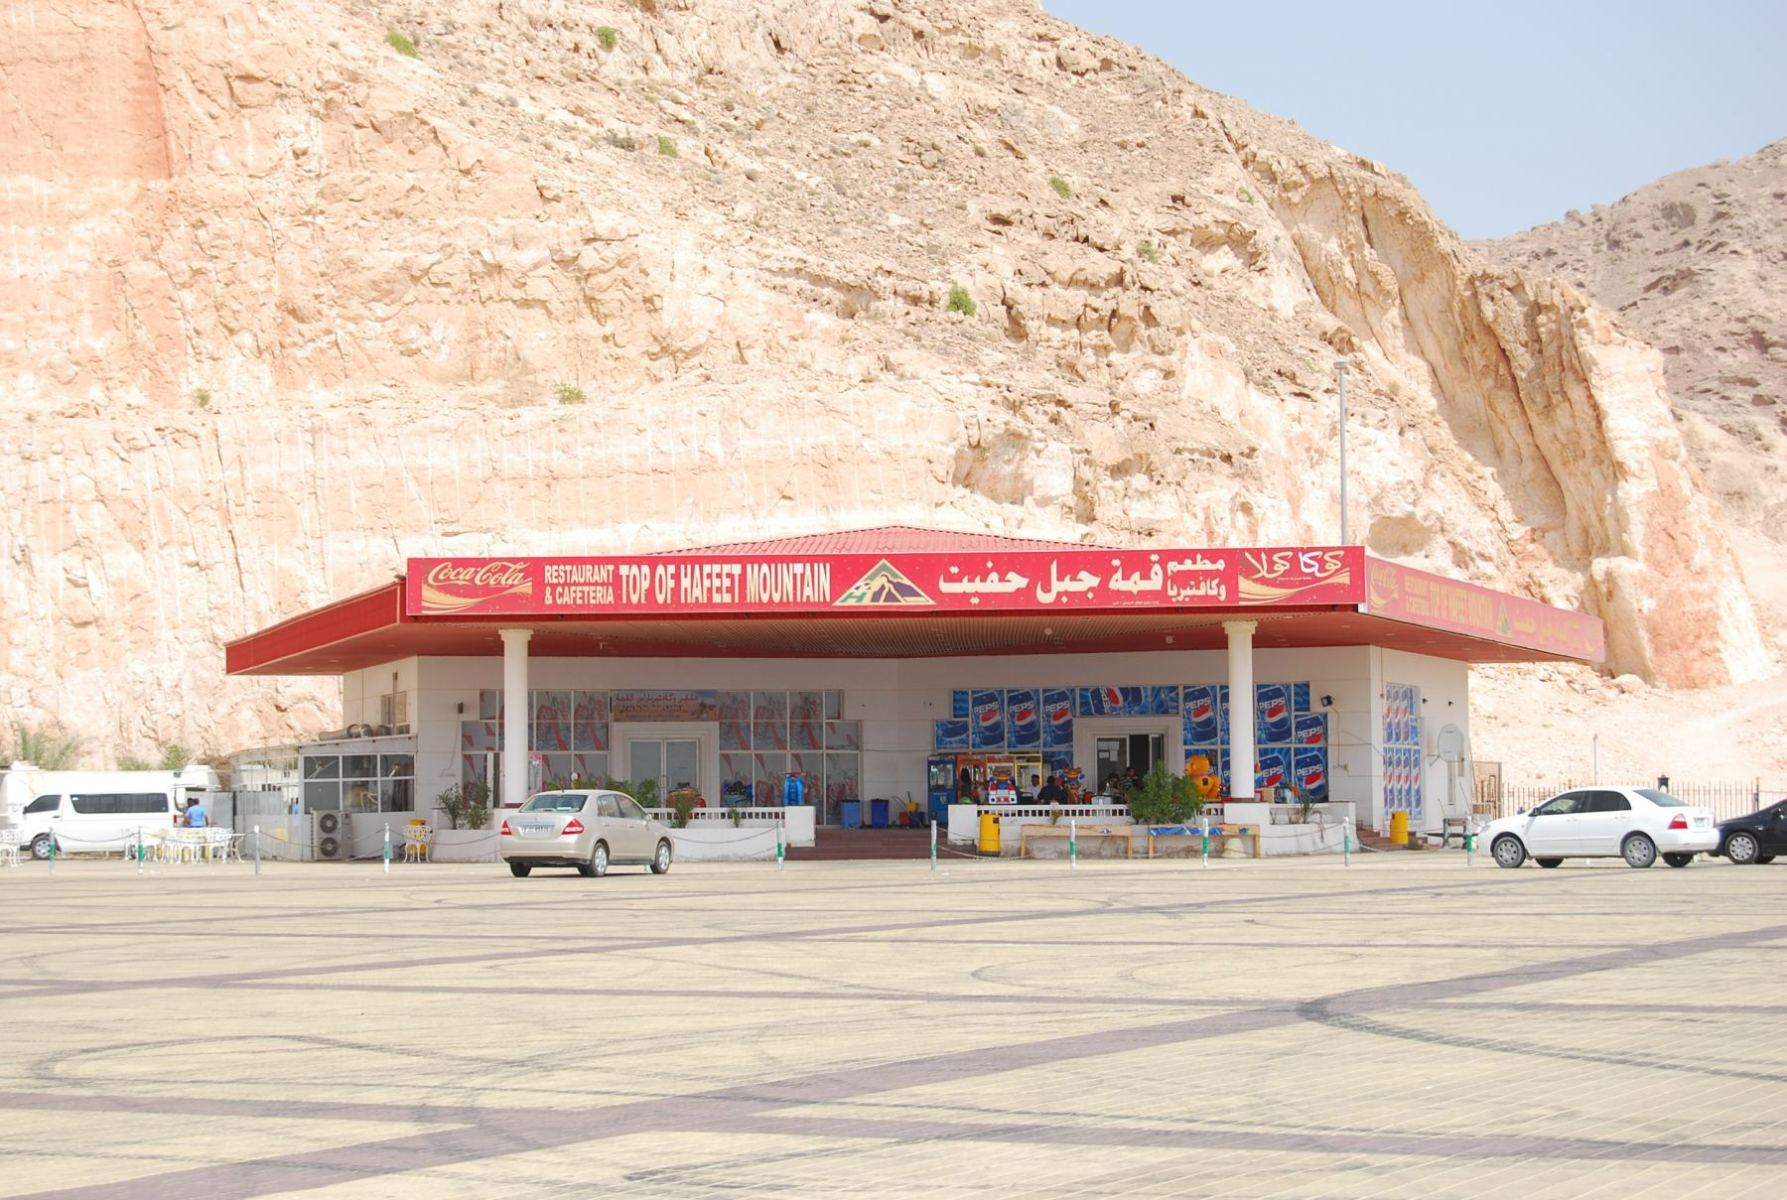 Restaurant_at_the_top_of_Jebel_Hafeet.JPG